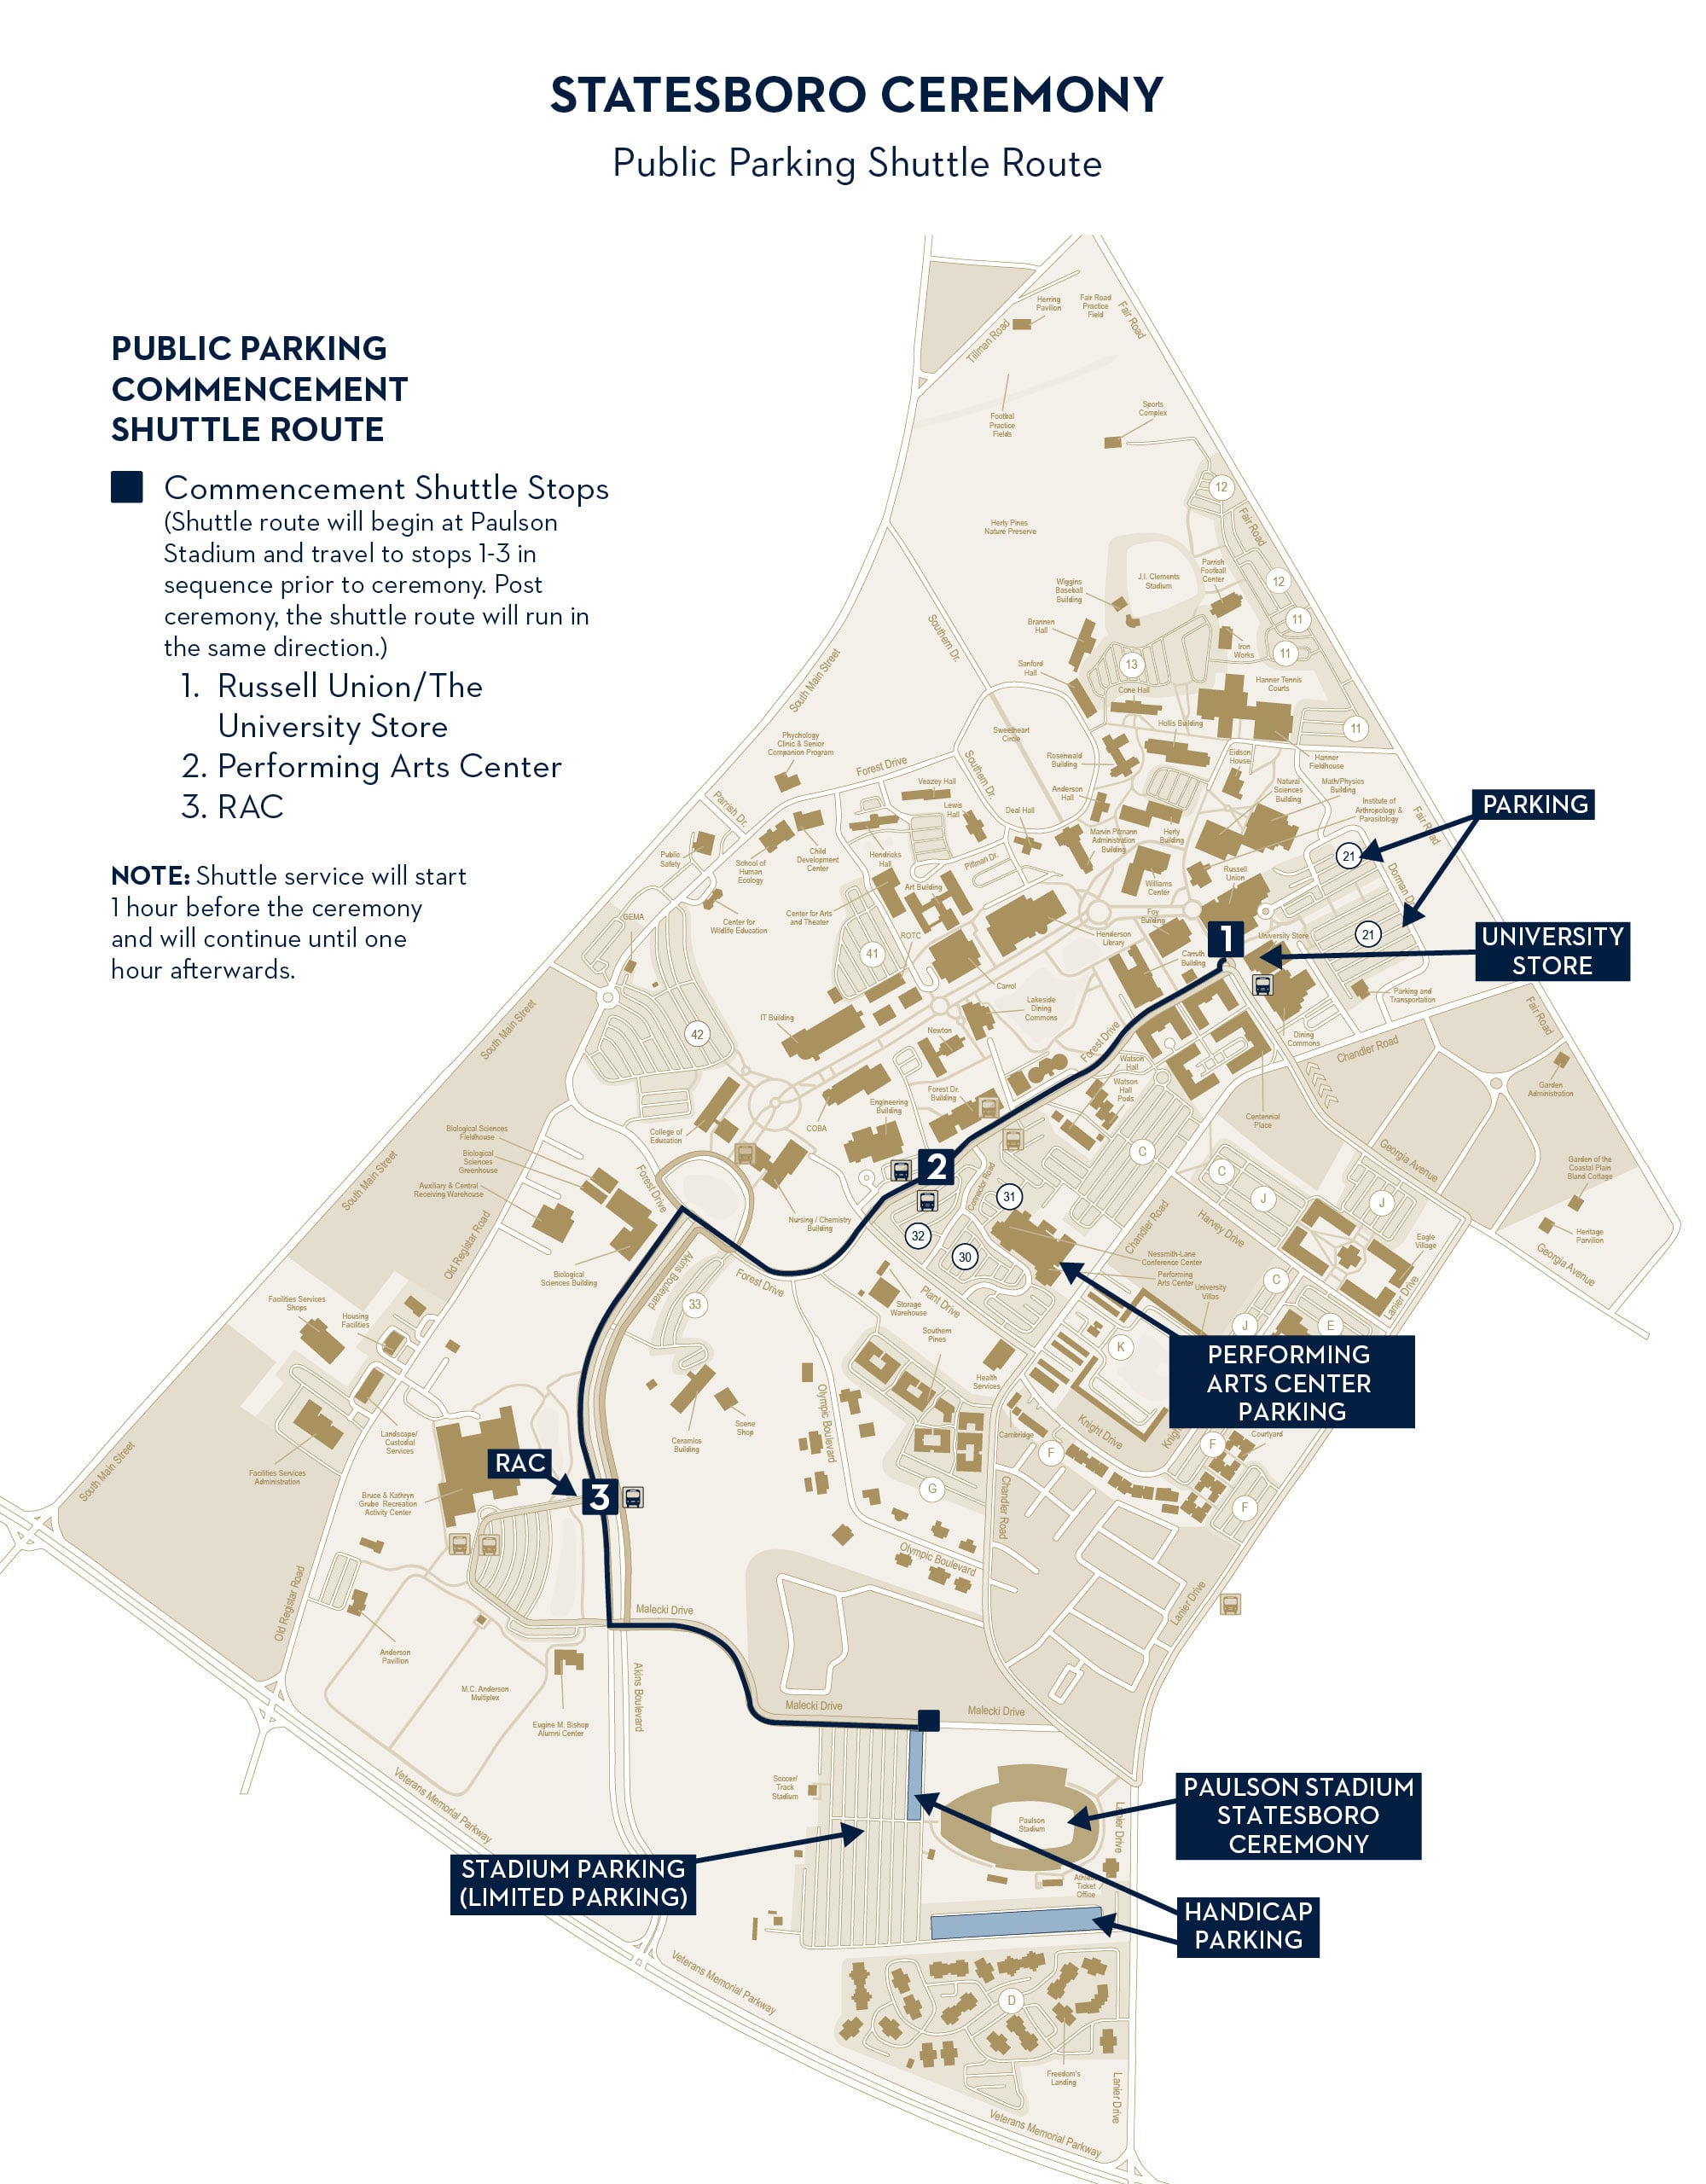 statesboro campus shuttle route and map showing three shuttle stops at the russell union, engineering building, and the rac